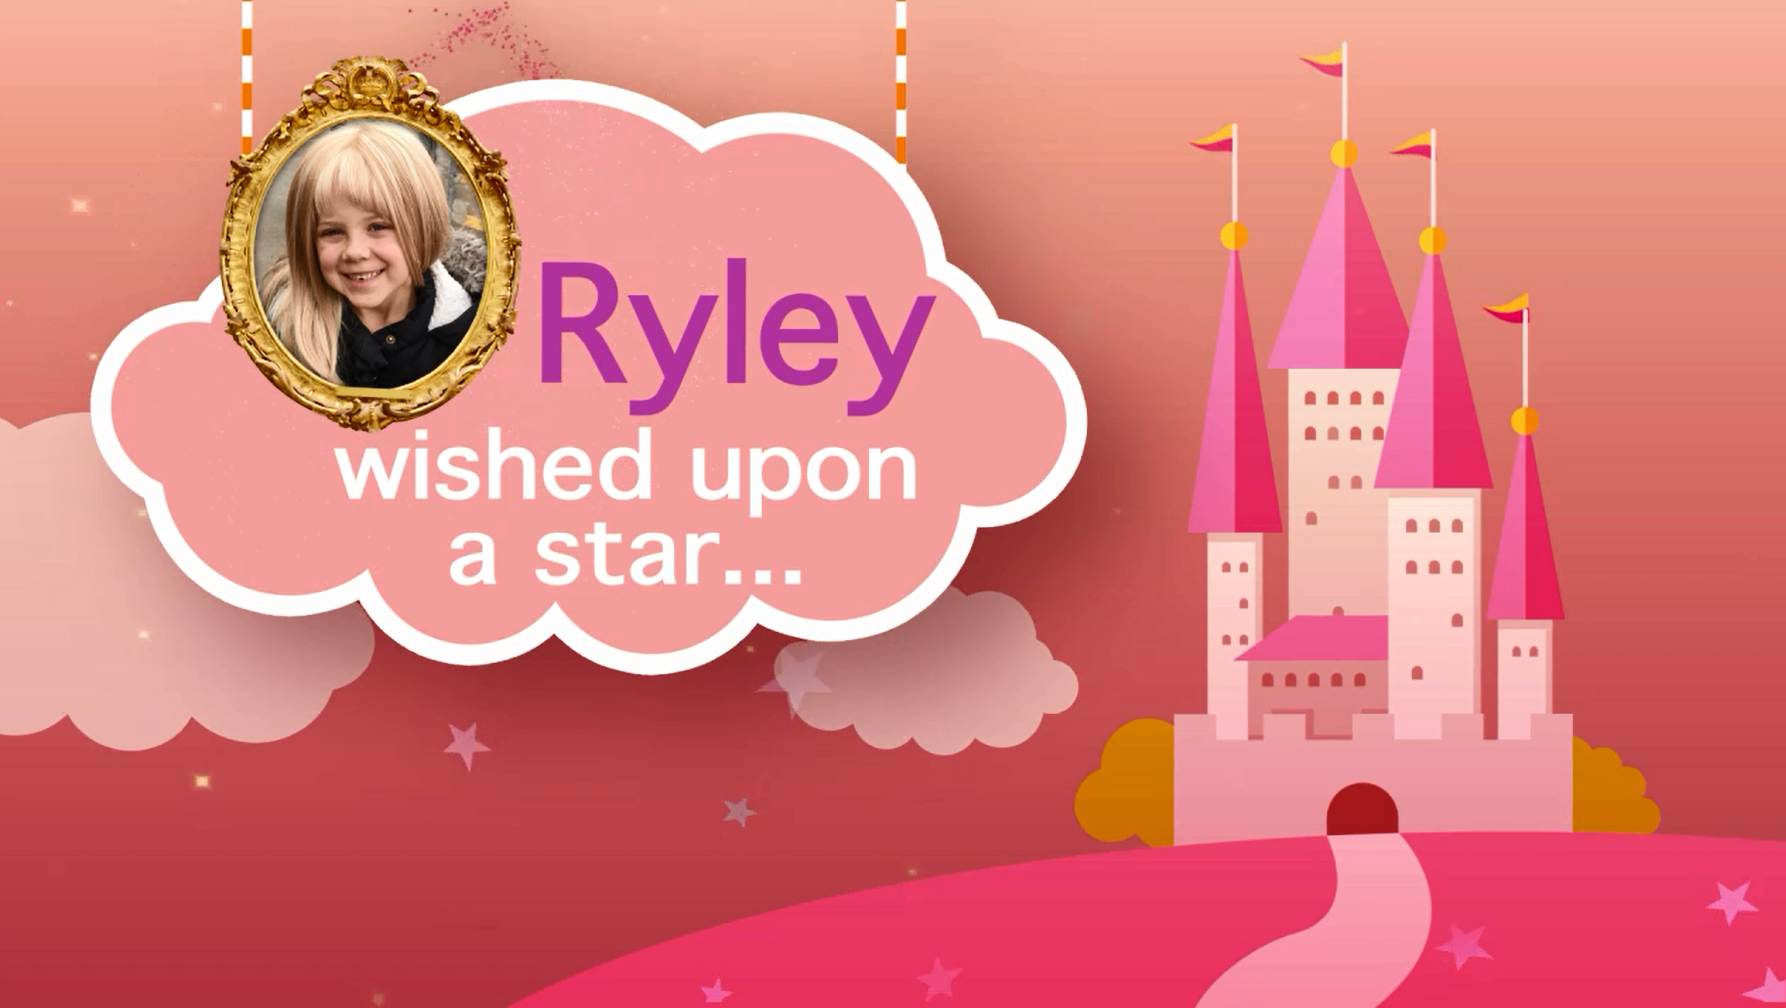 Make A Wish Canada - Ryley's Wish